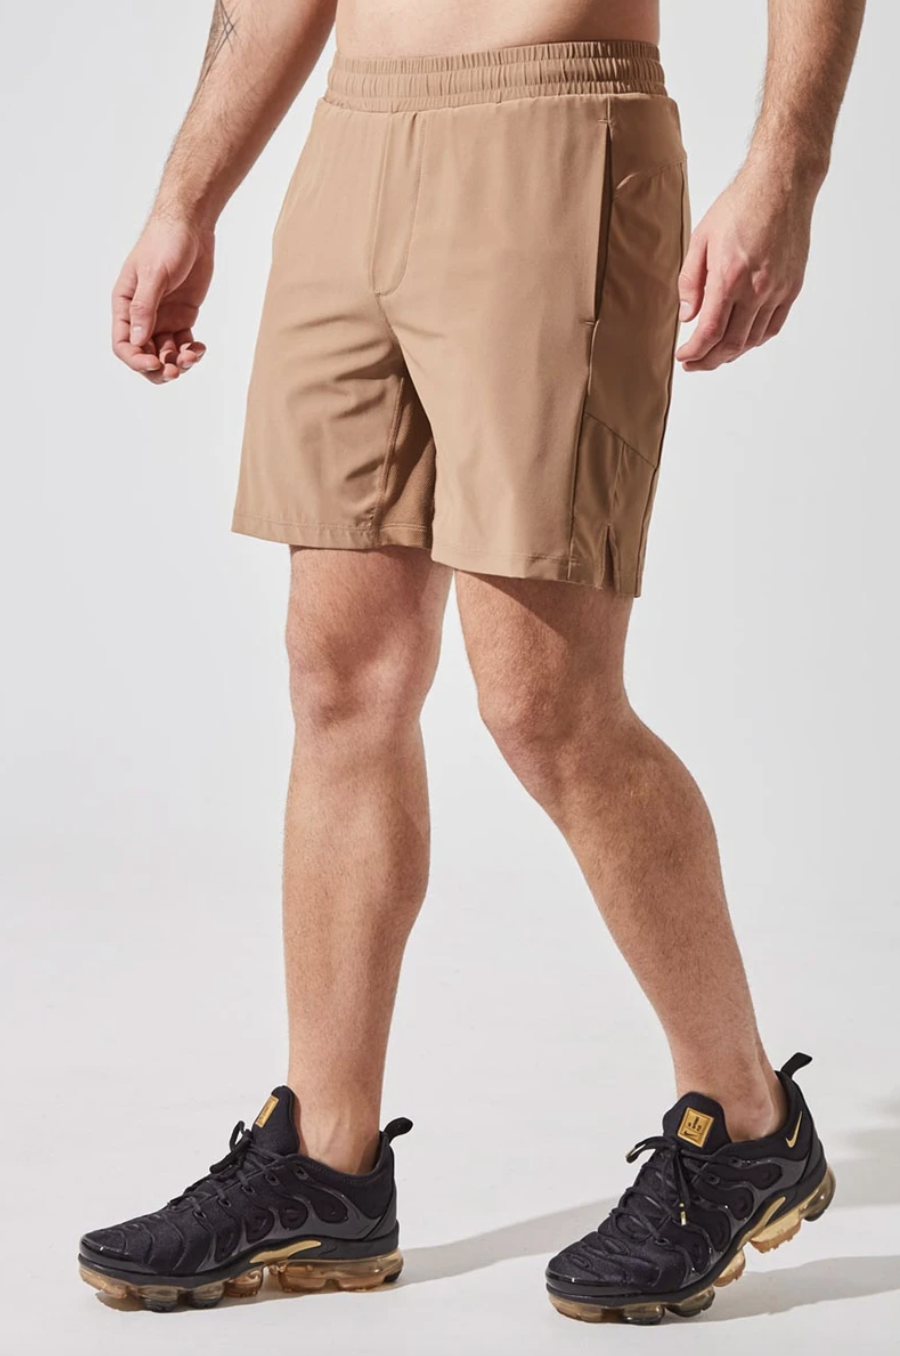 """Catch 7"""" Recycled Polyester Short with Liner in Camel (Photo via MPG)"""